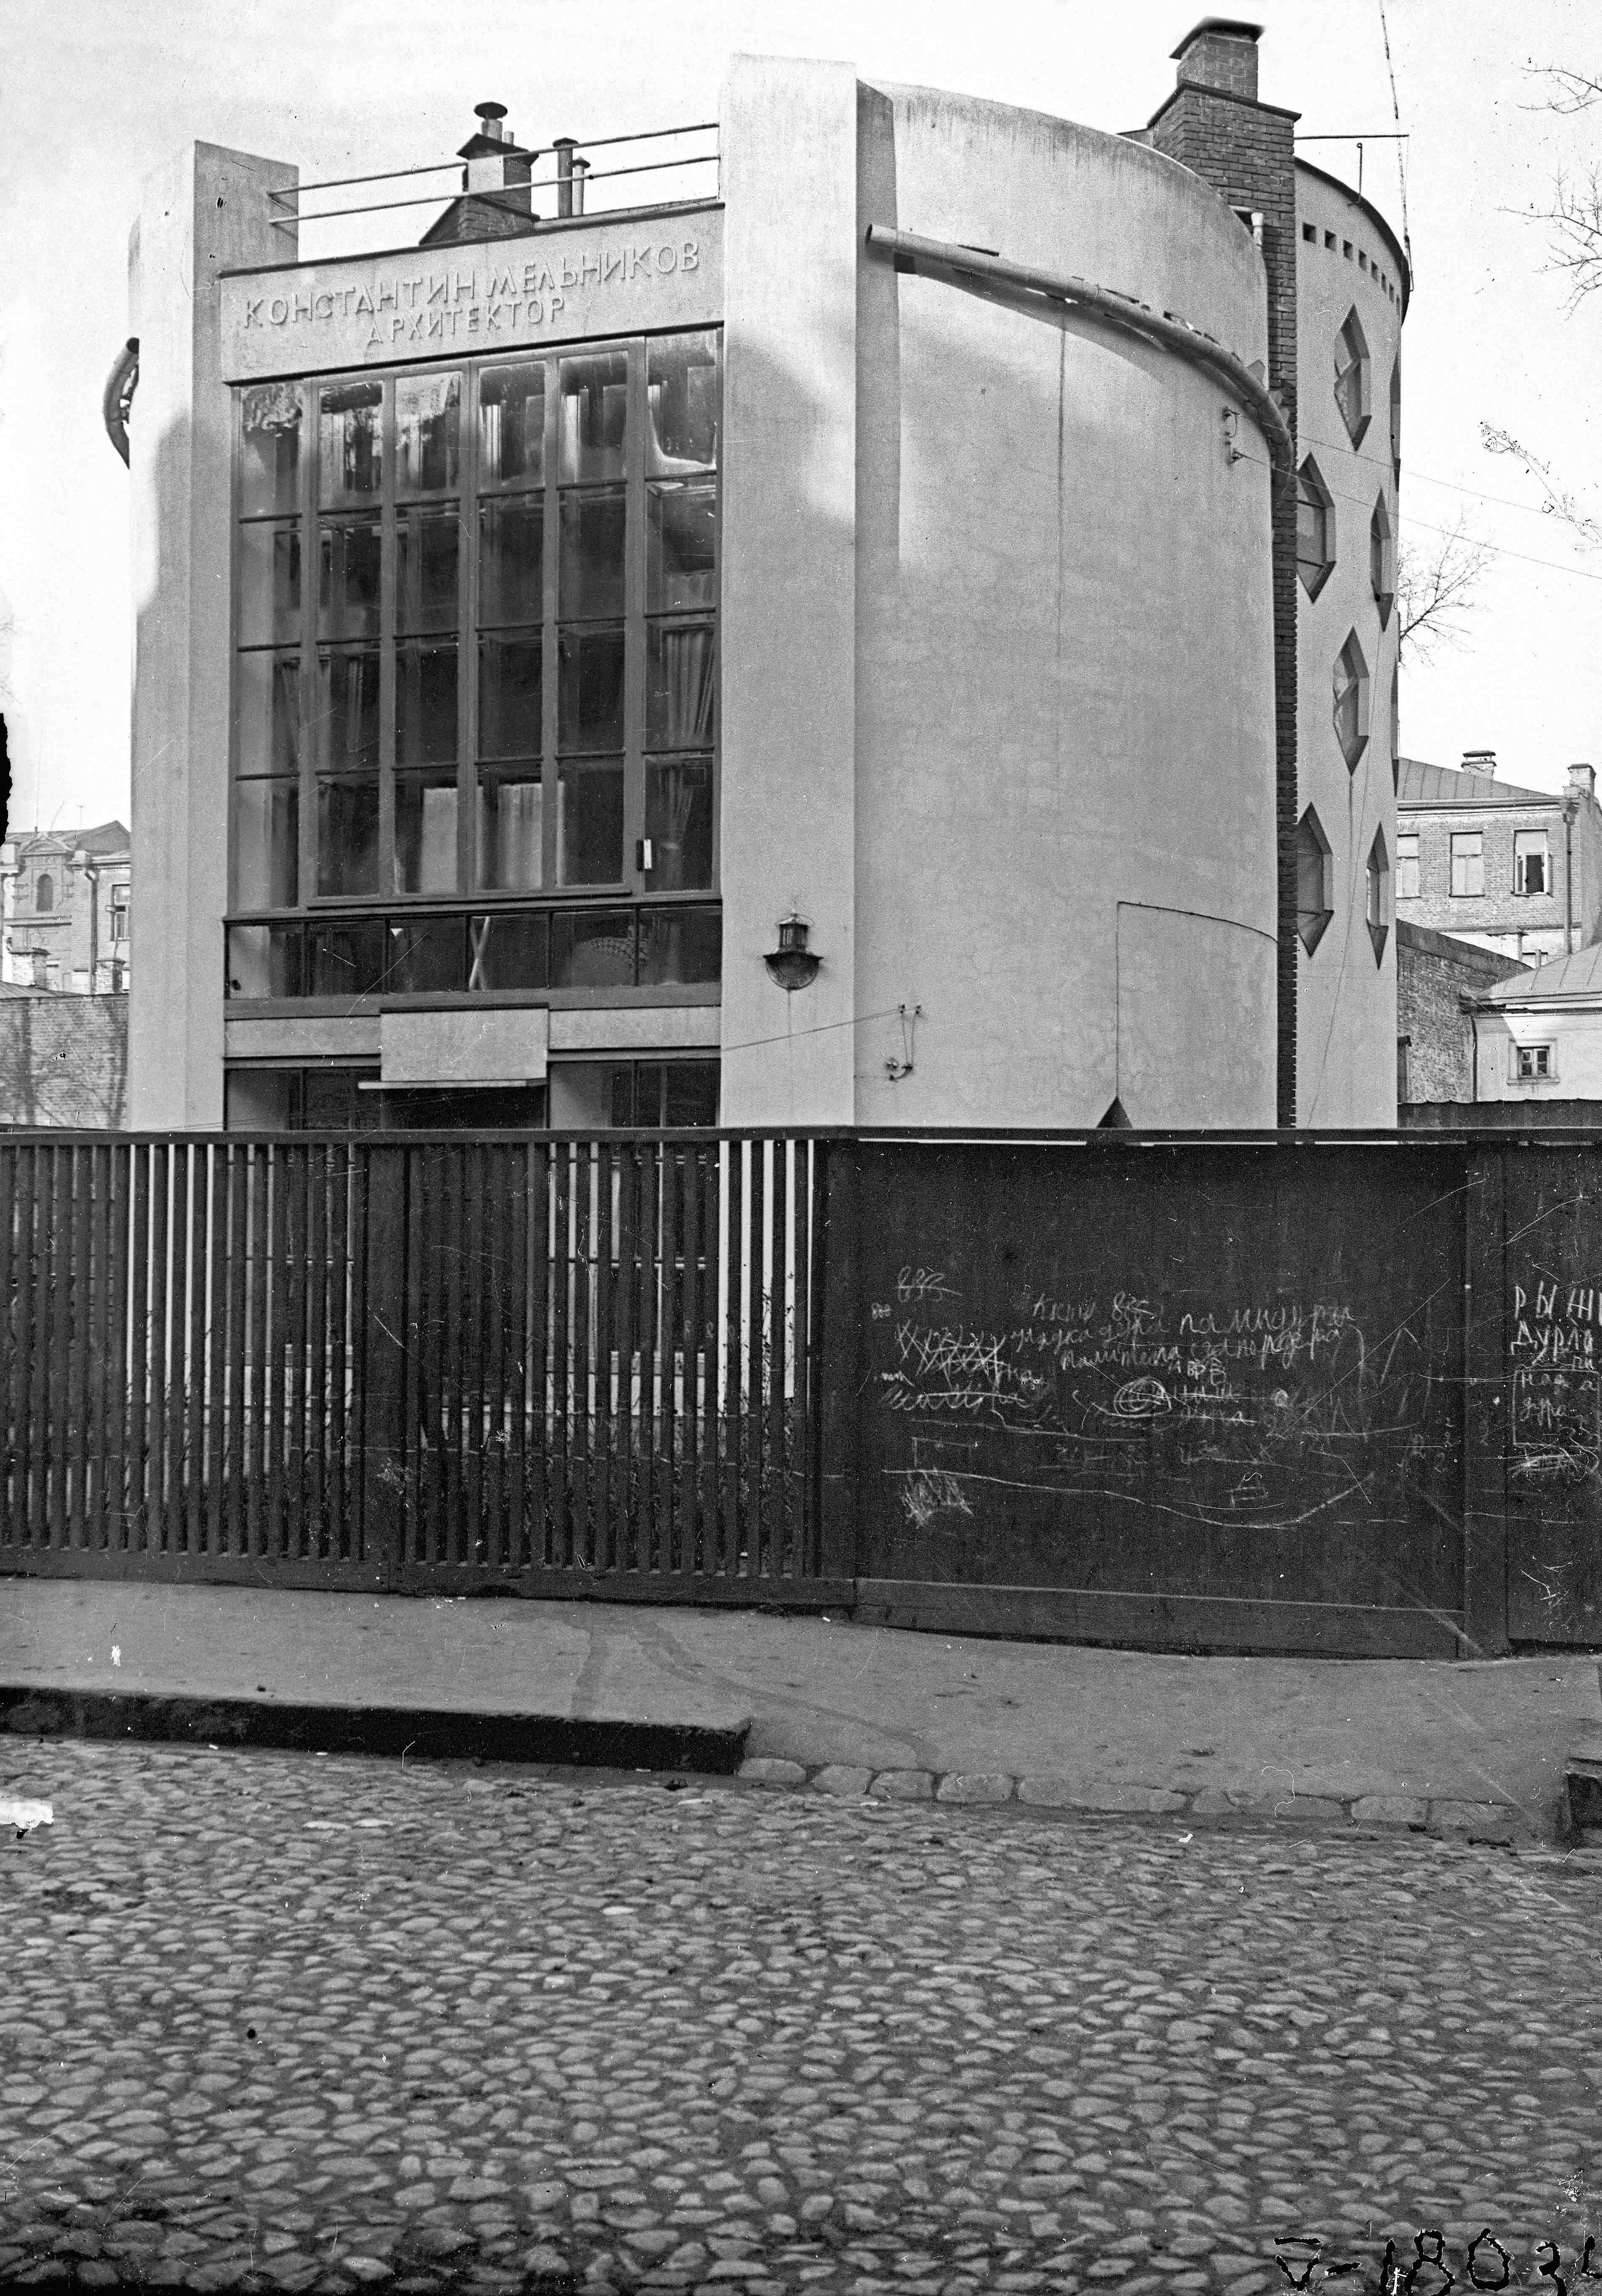 Mel'nikov house photographed by M.A. Ilyin in 1931